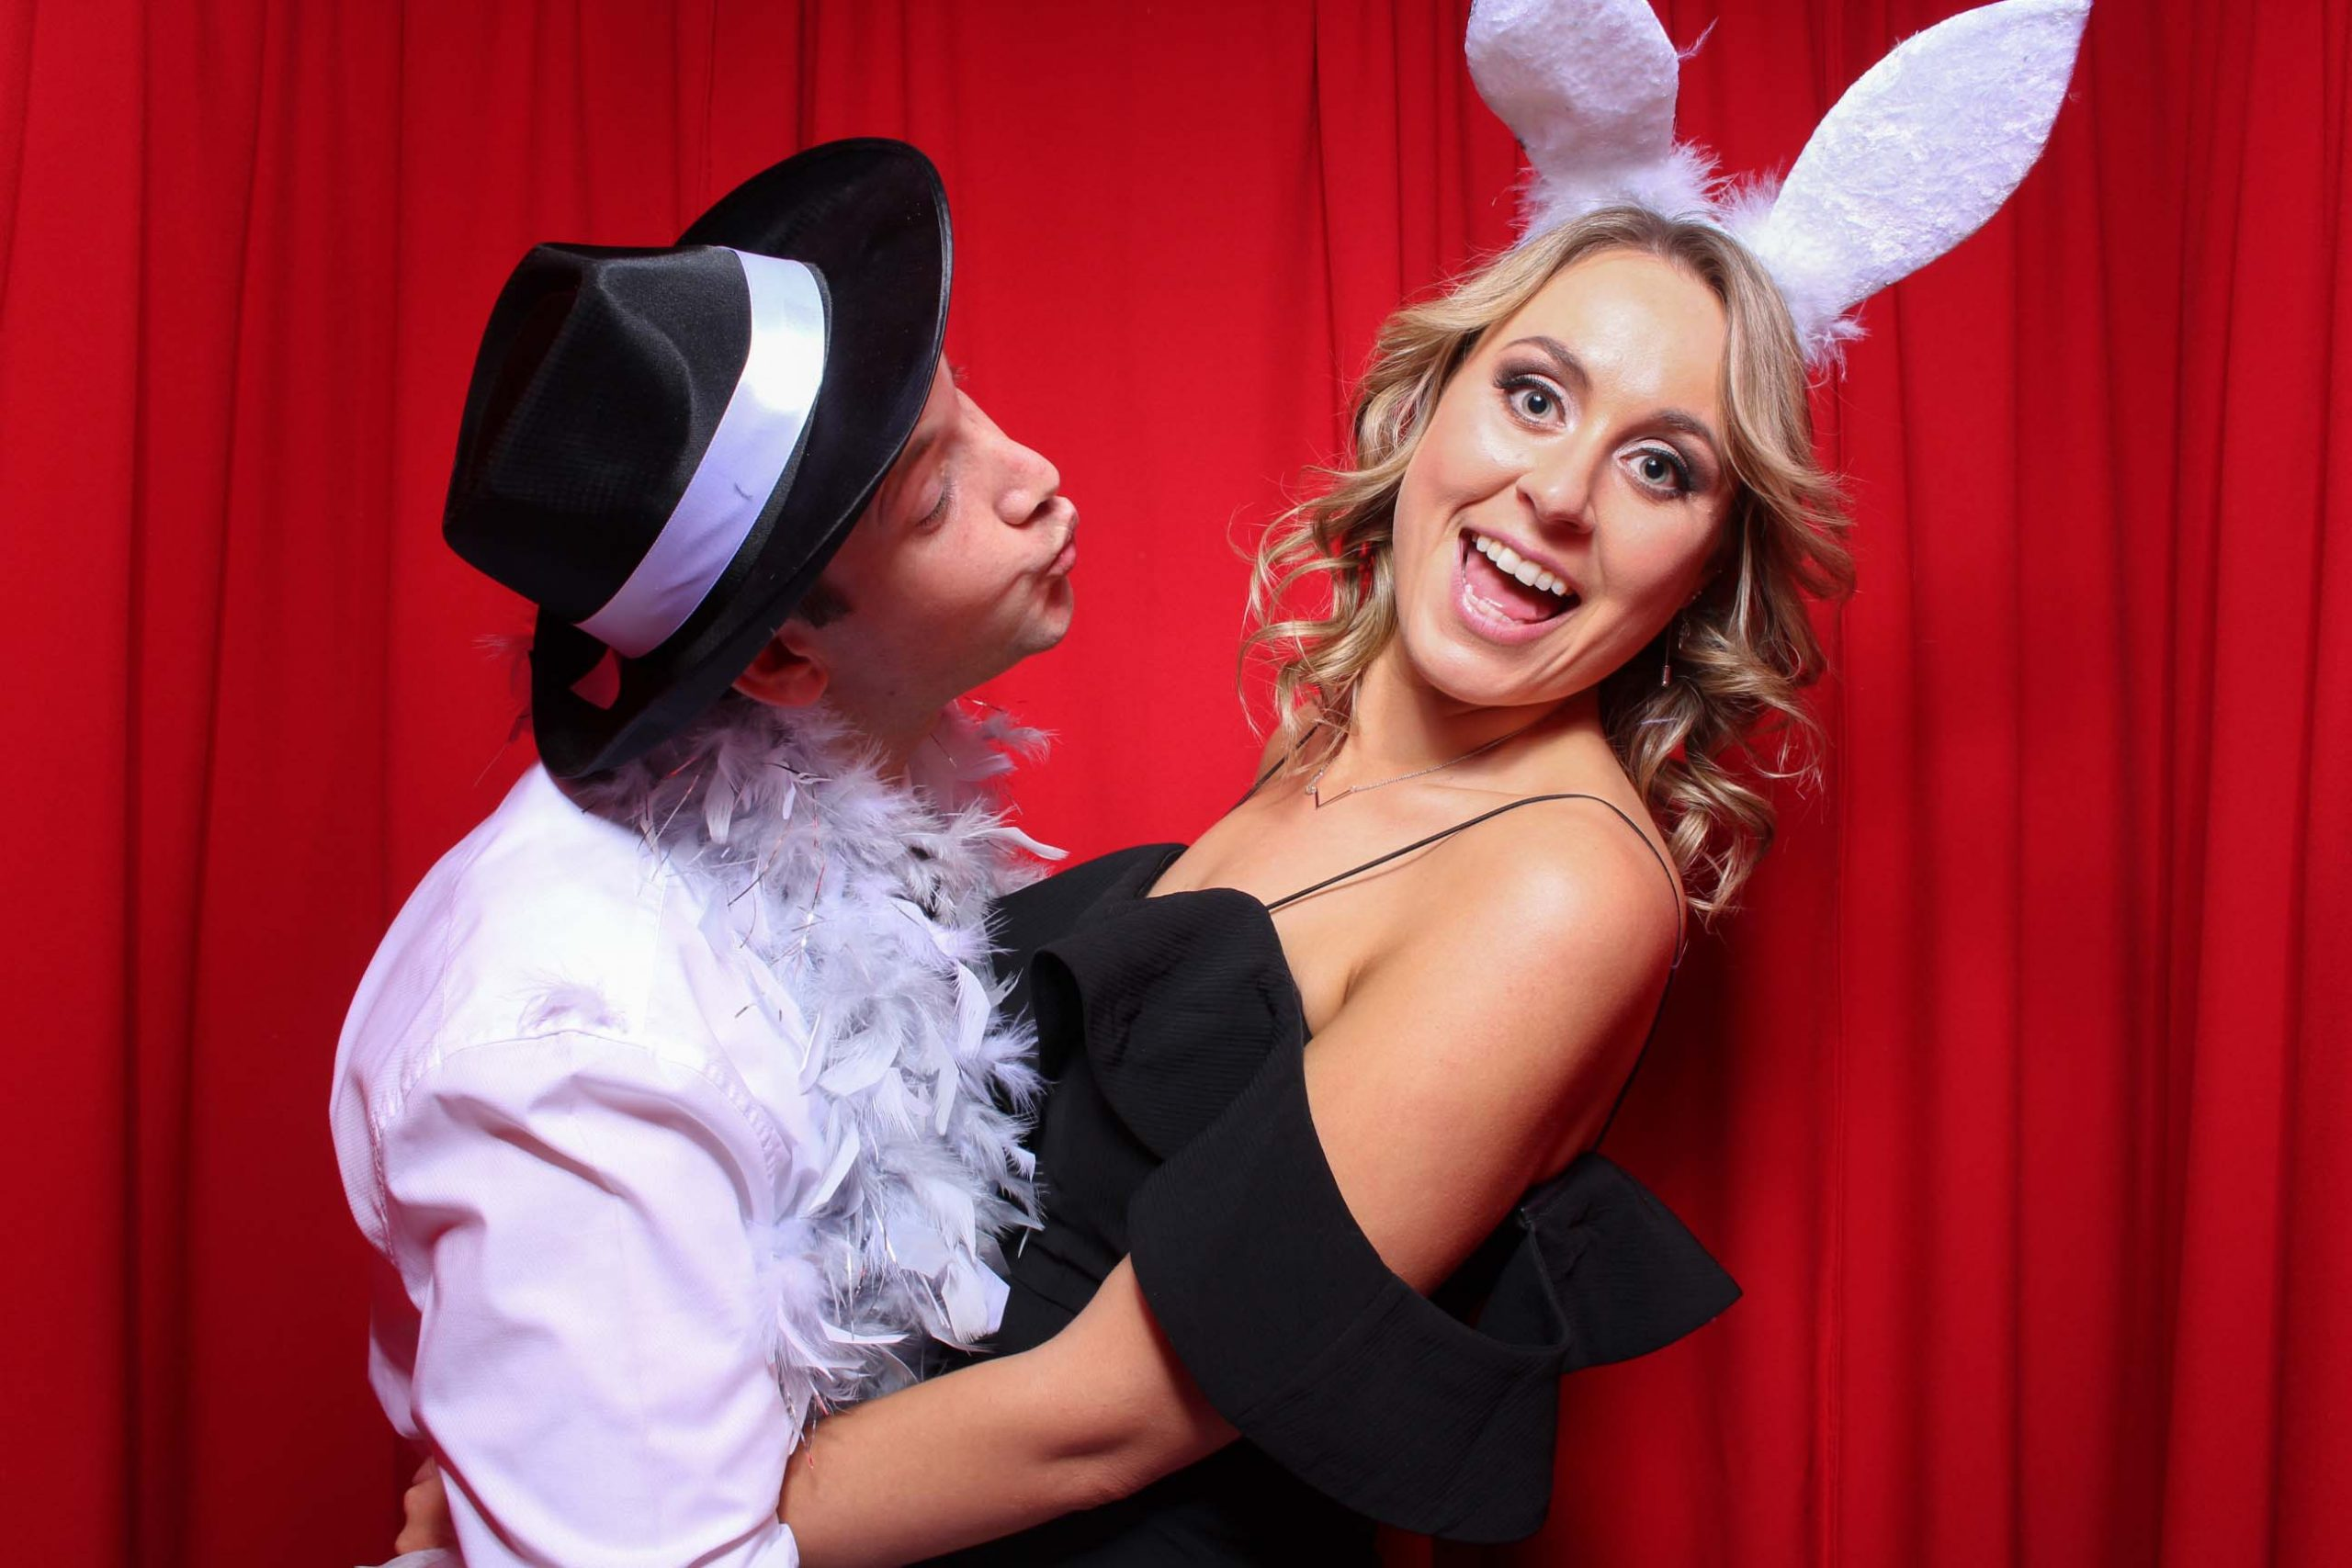 Adelaide photo booth hire